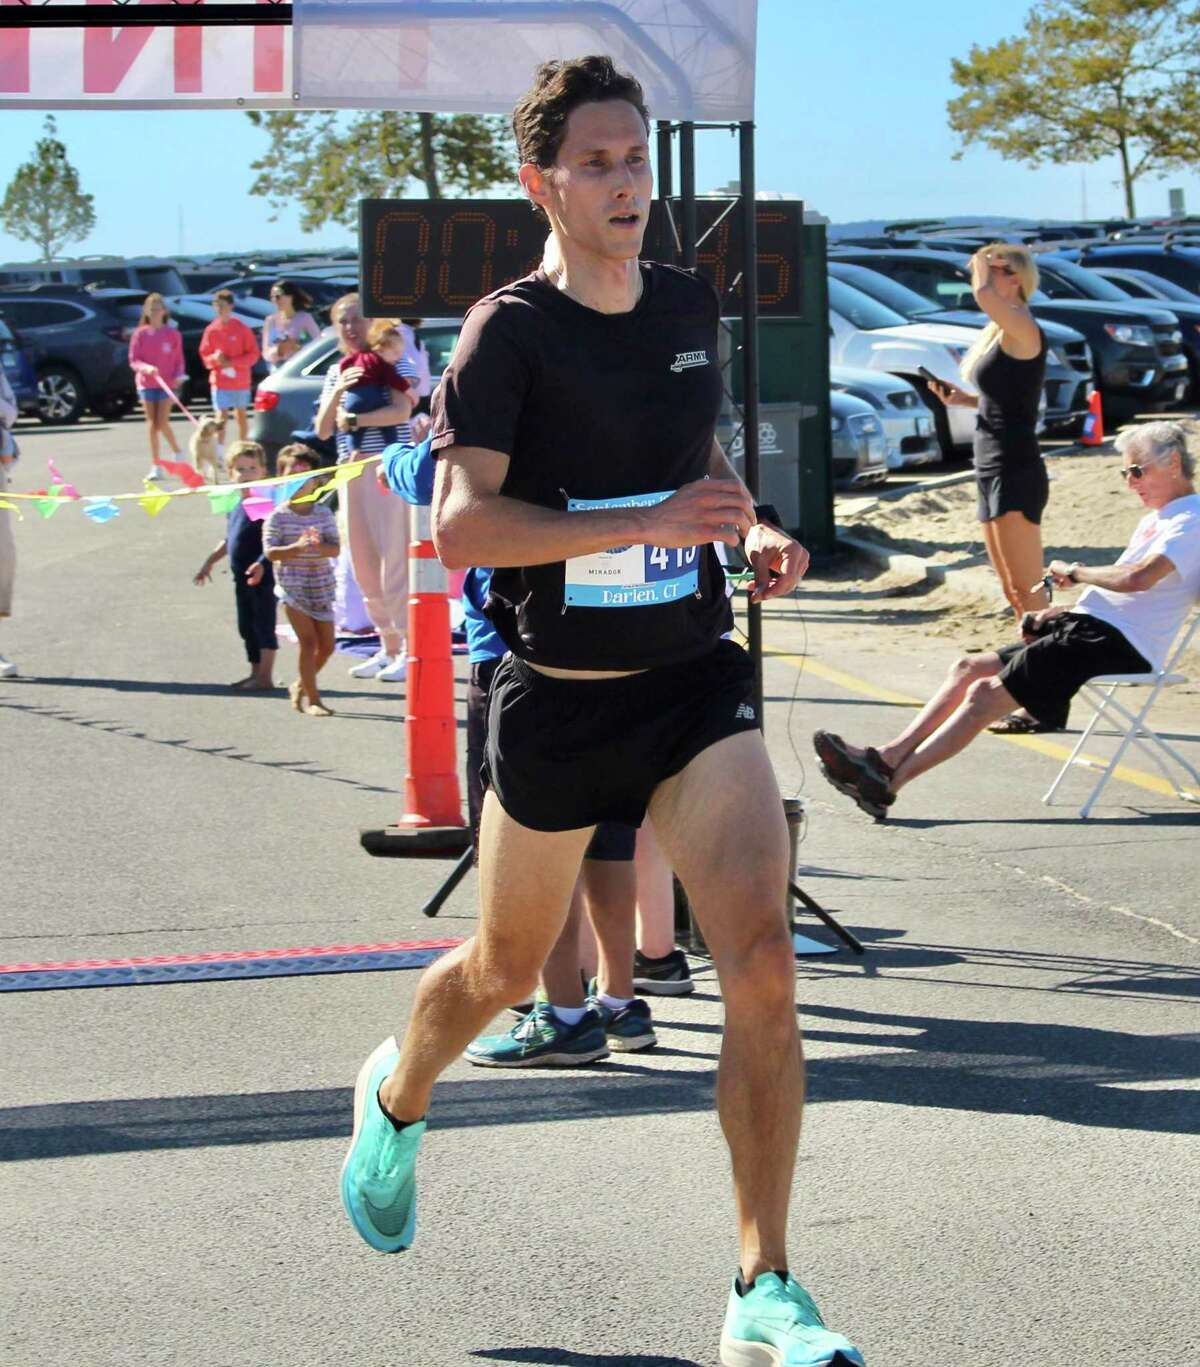 Patrick Dooley, of Stamford, was the first person to cross the five-mile finish line with a time of 26:47